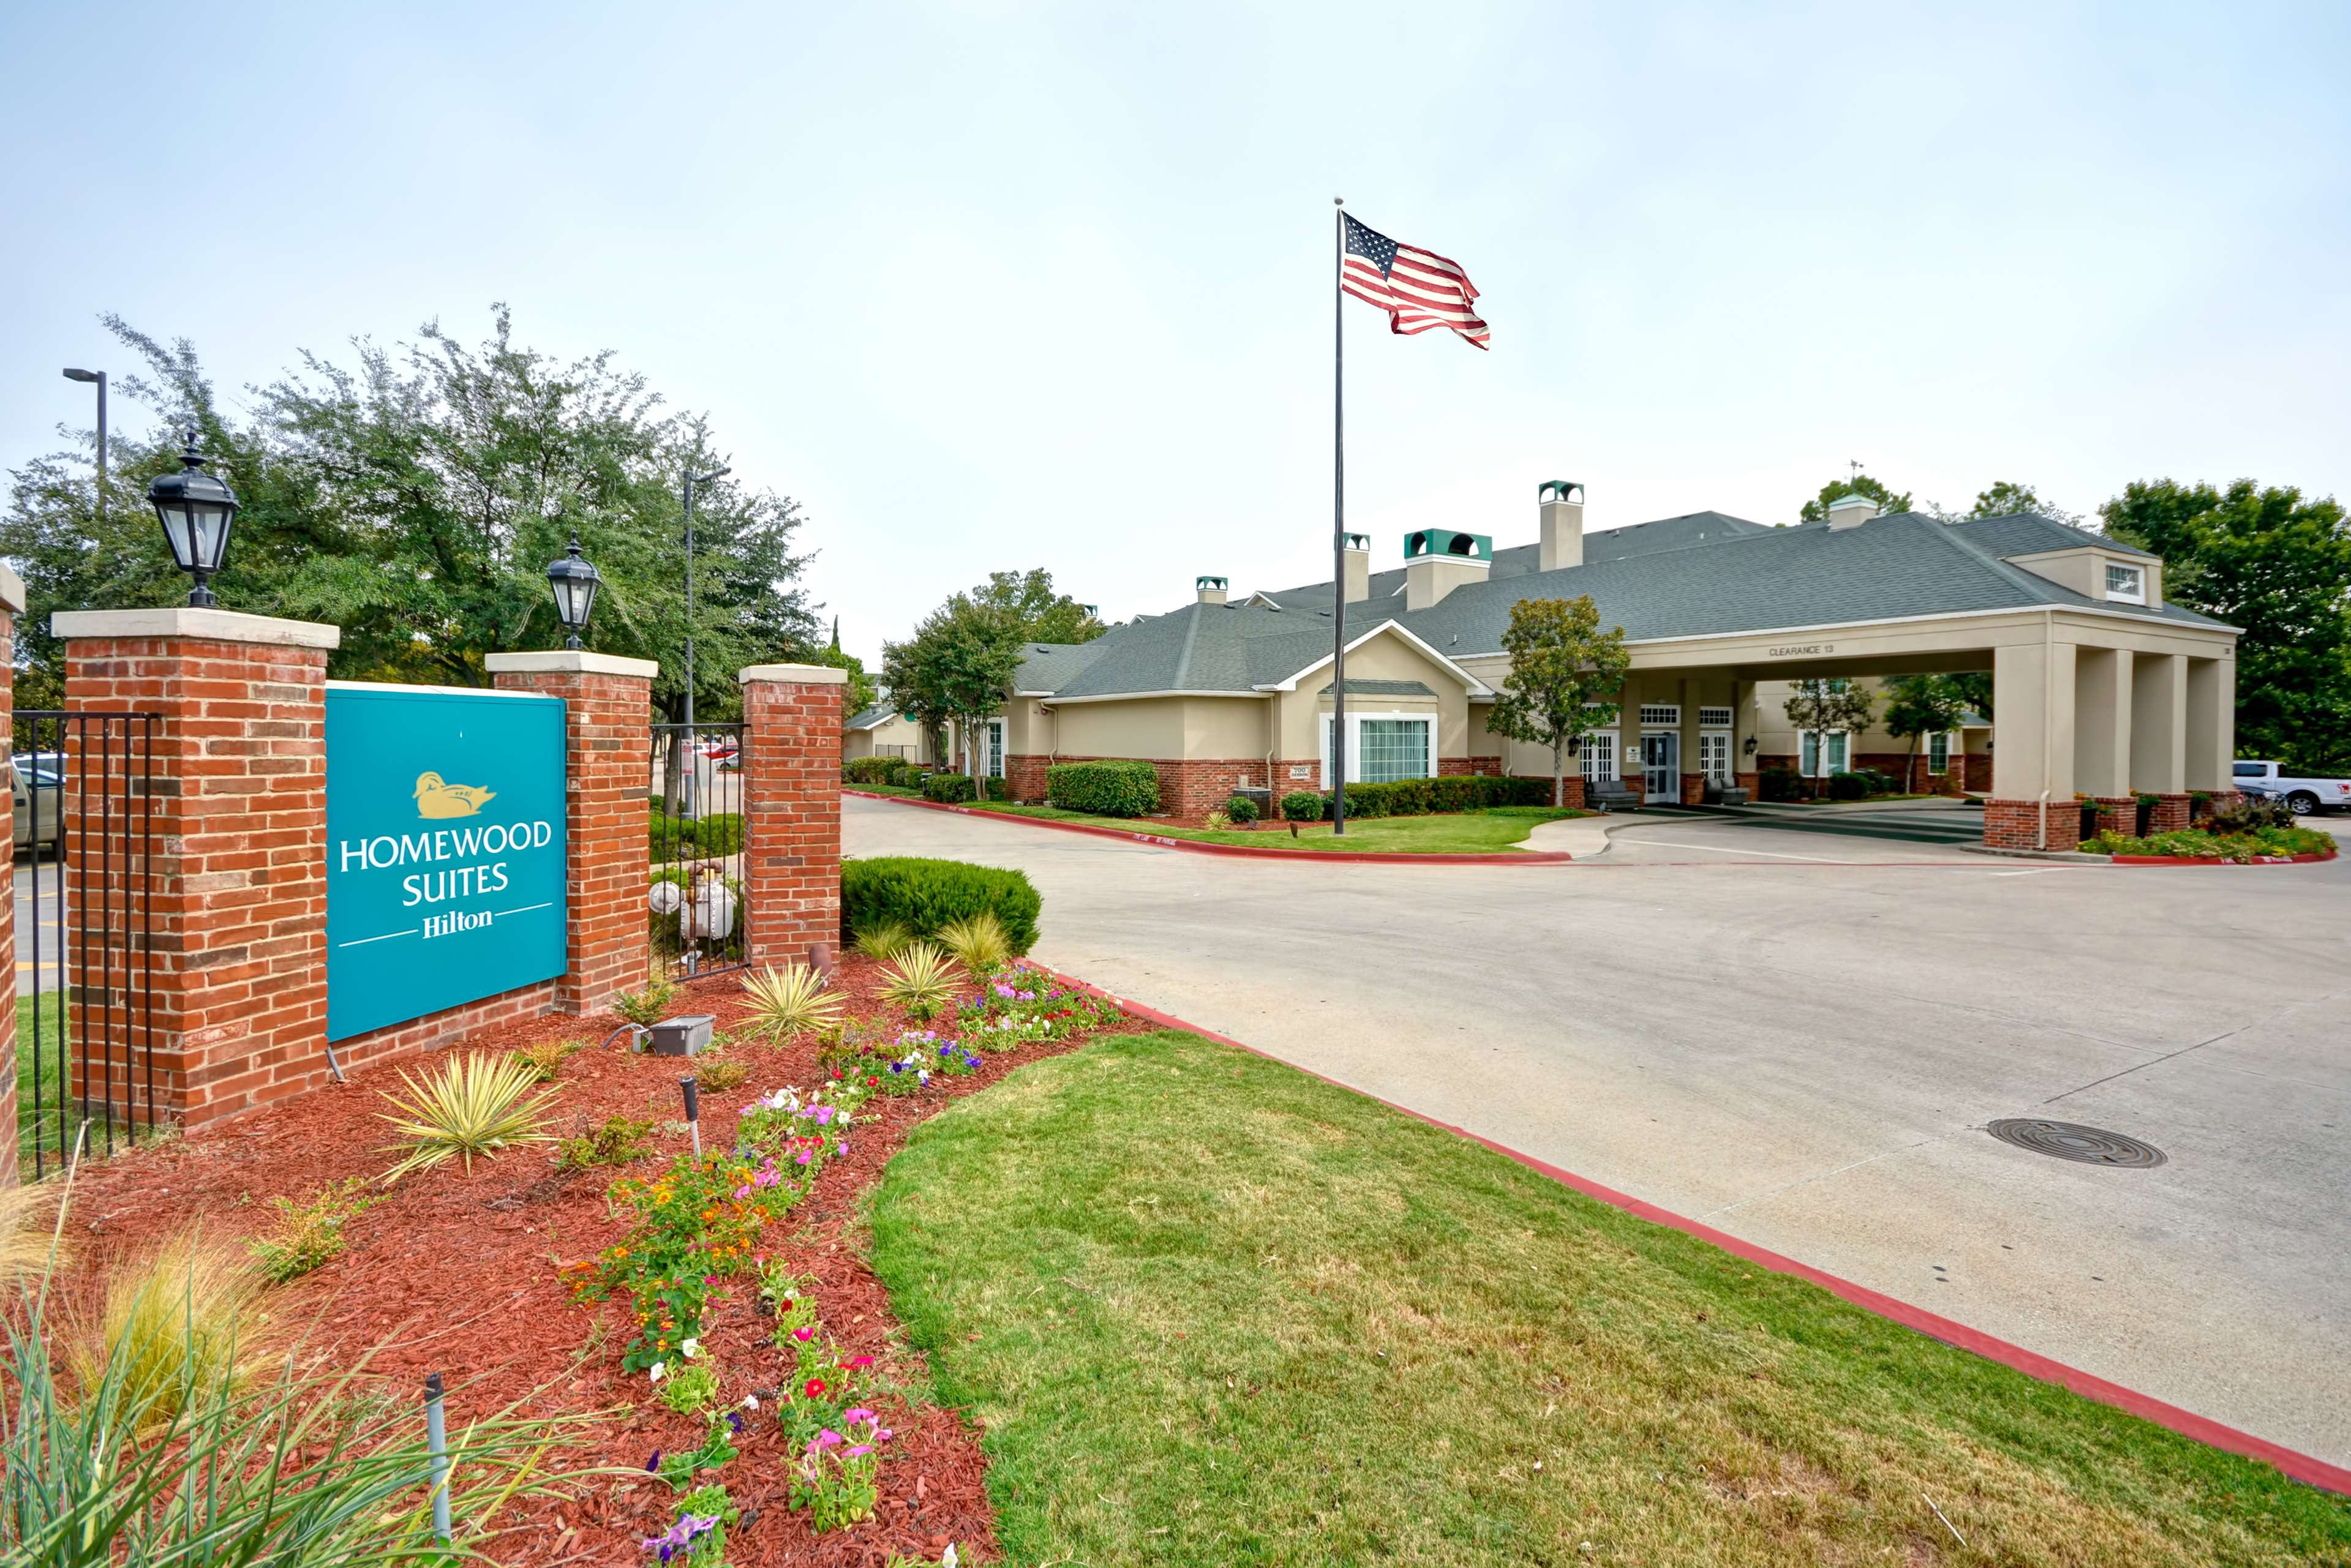 Homewood Suites by Hilton Dallas-Lewisville image 0